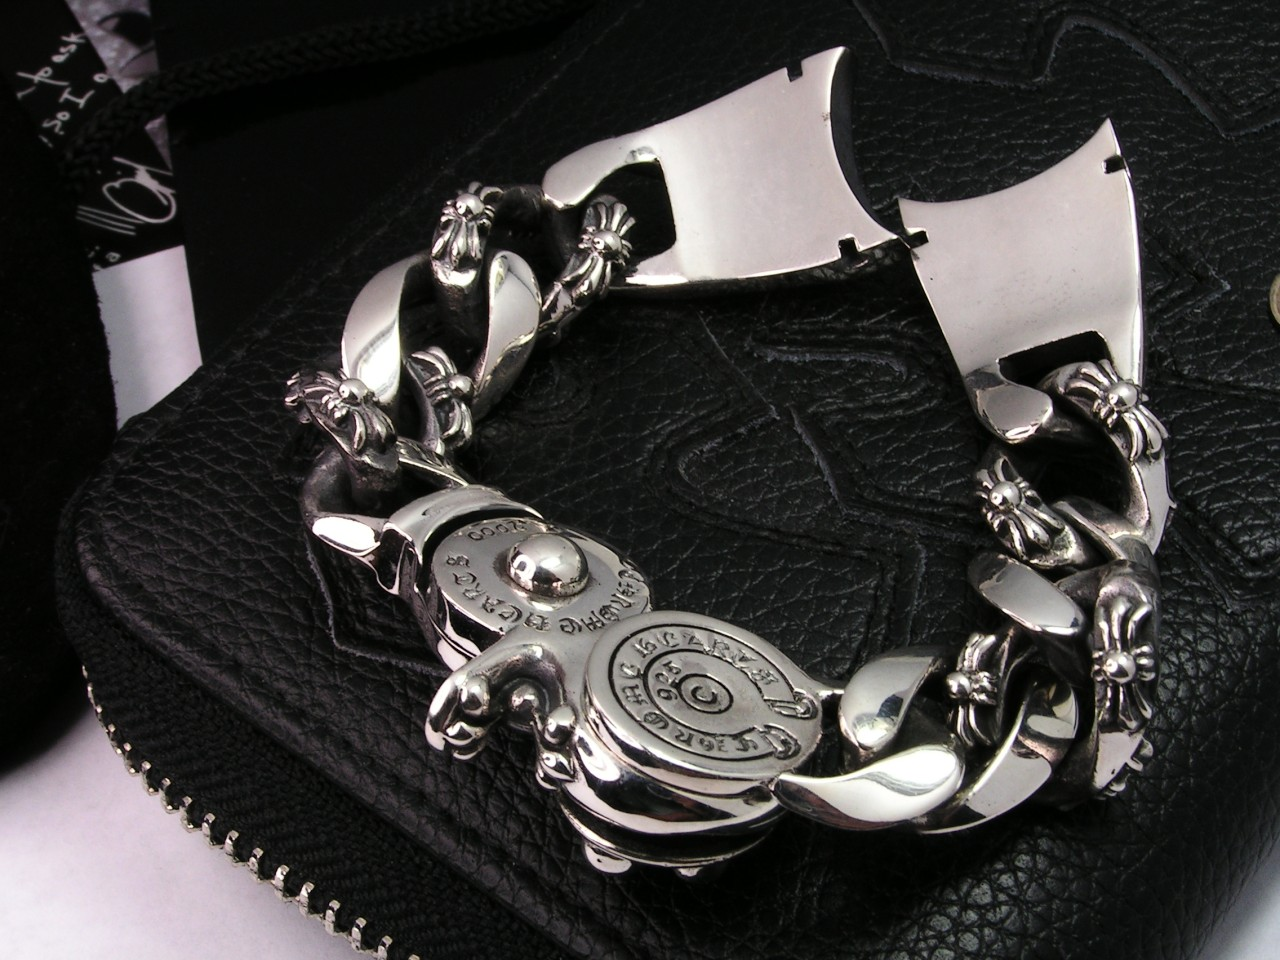 GENUINE CHROME HEARTS STERLING SILVER WATCH BAND BRACELET